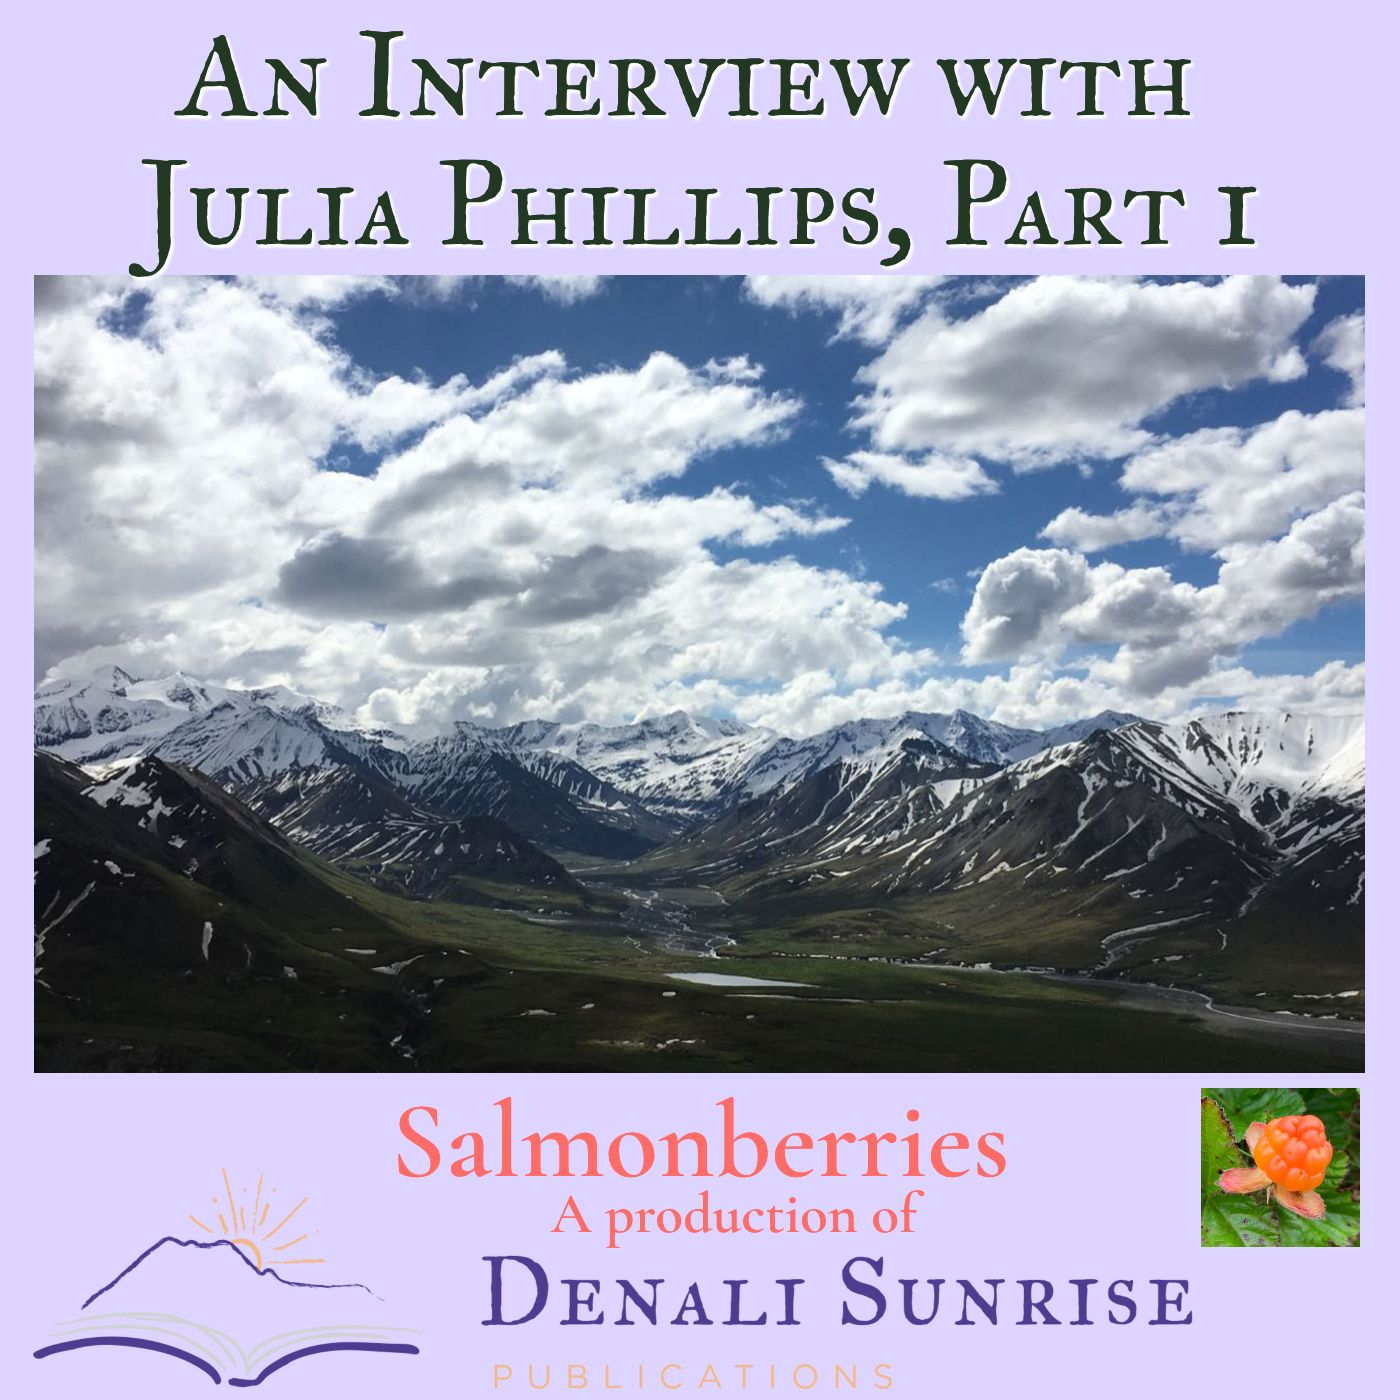 An Interview with Julia Phillips, Part 1